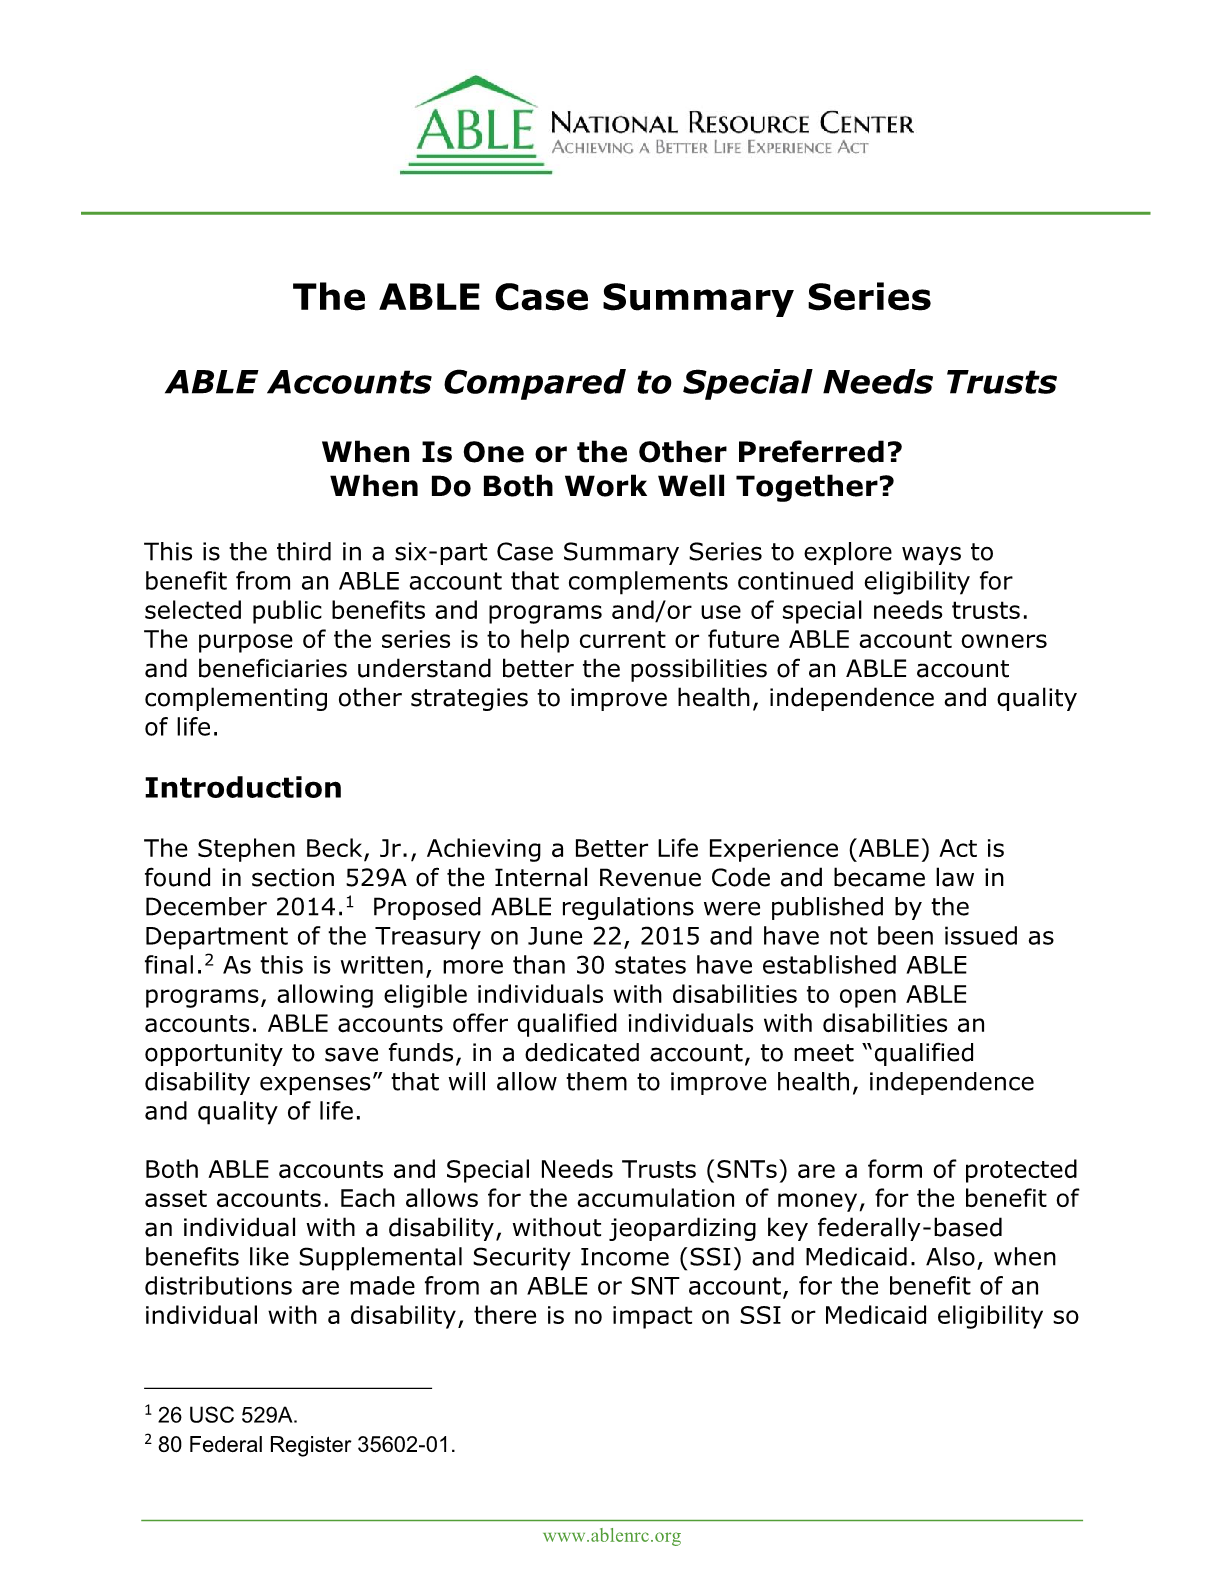 ABLE Accounts Compared to Special Need Trusts